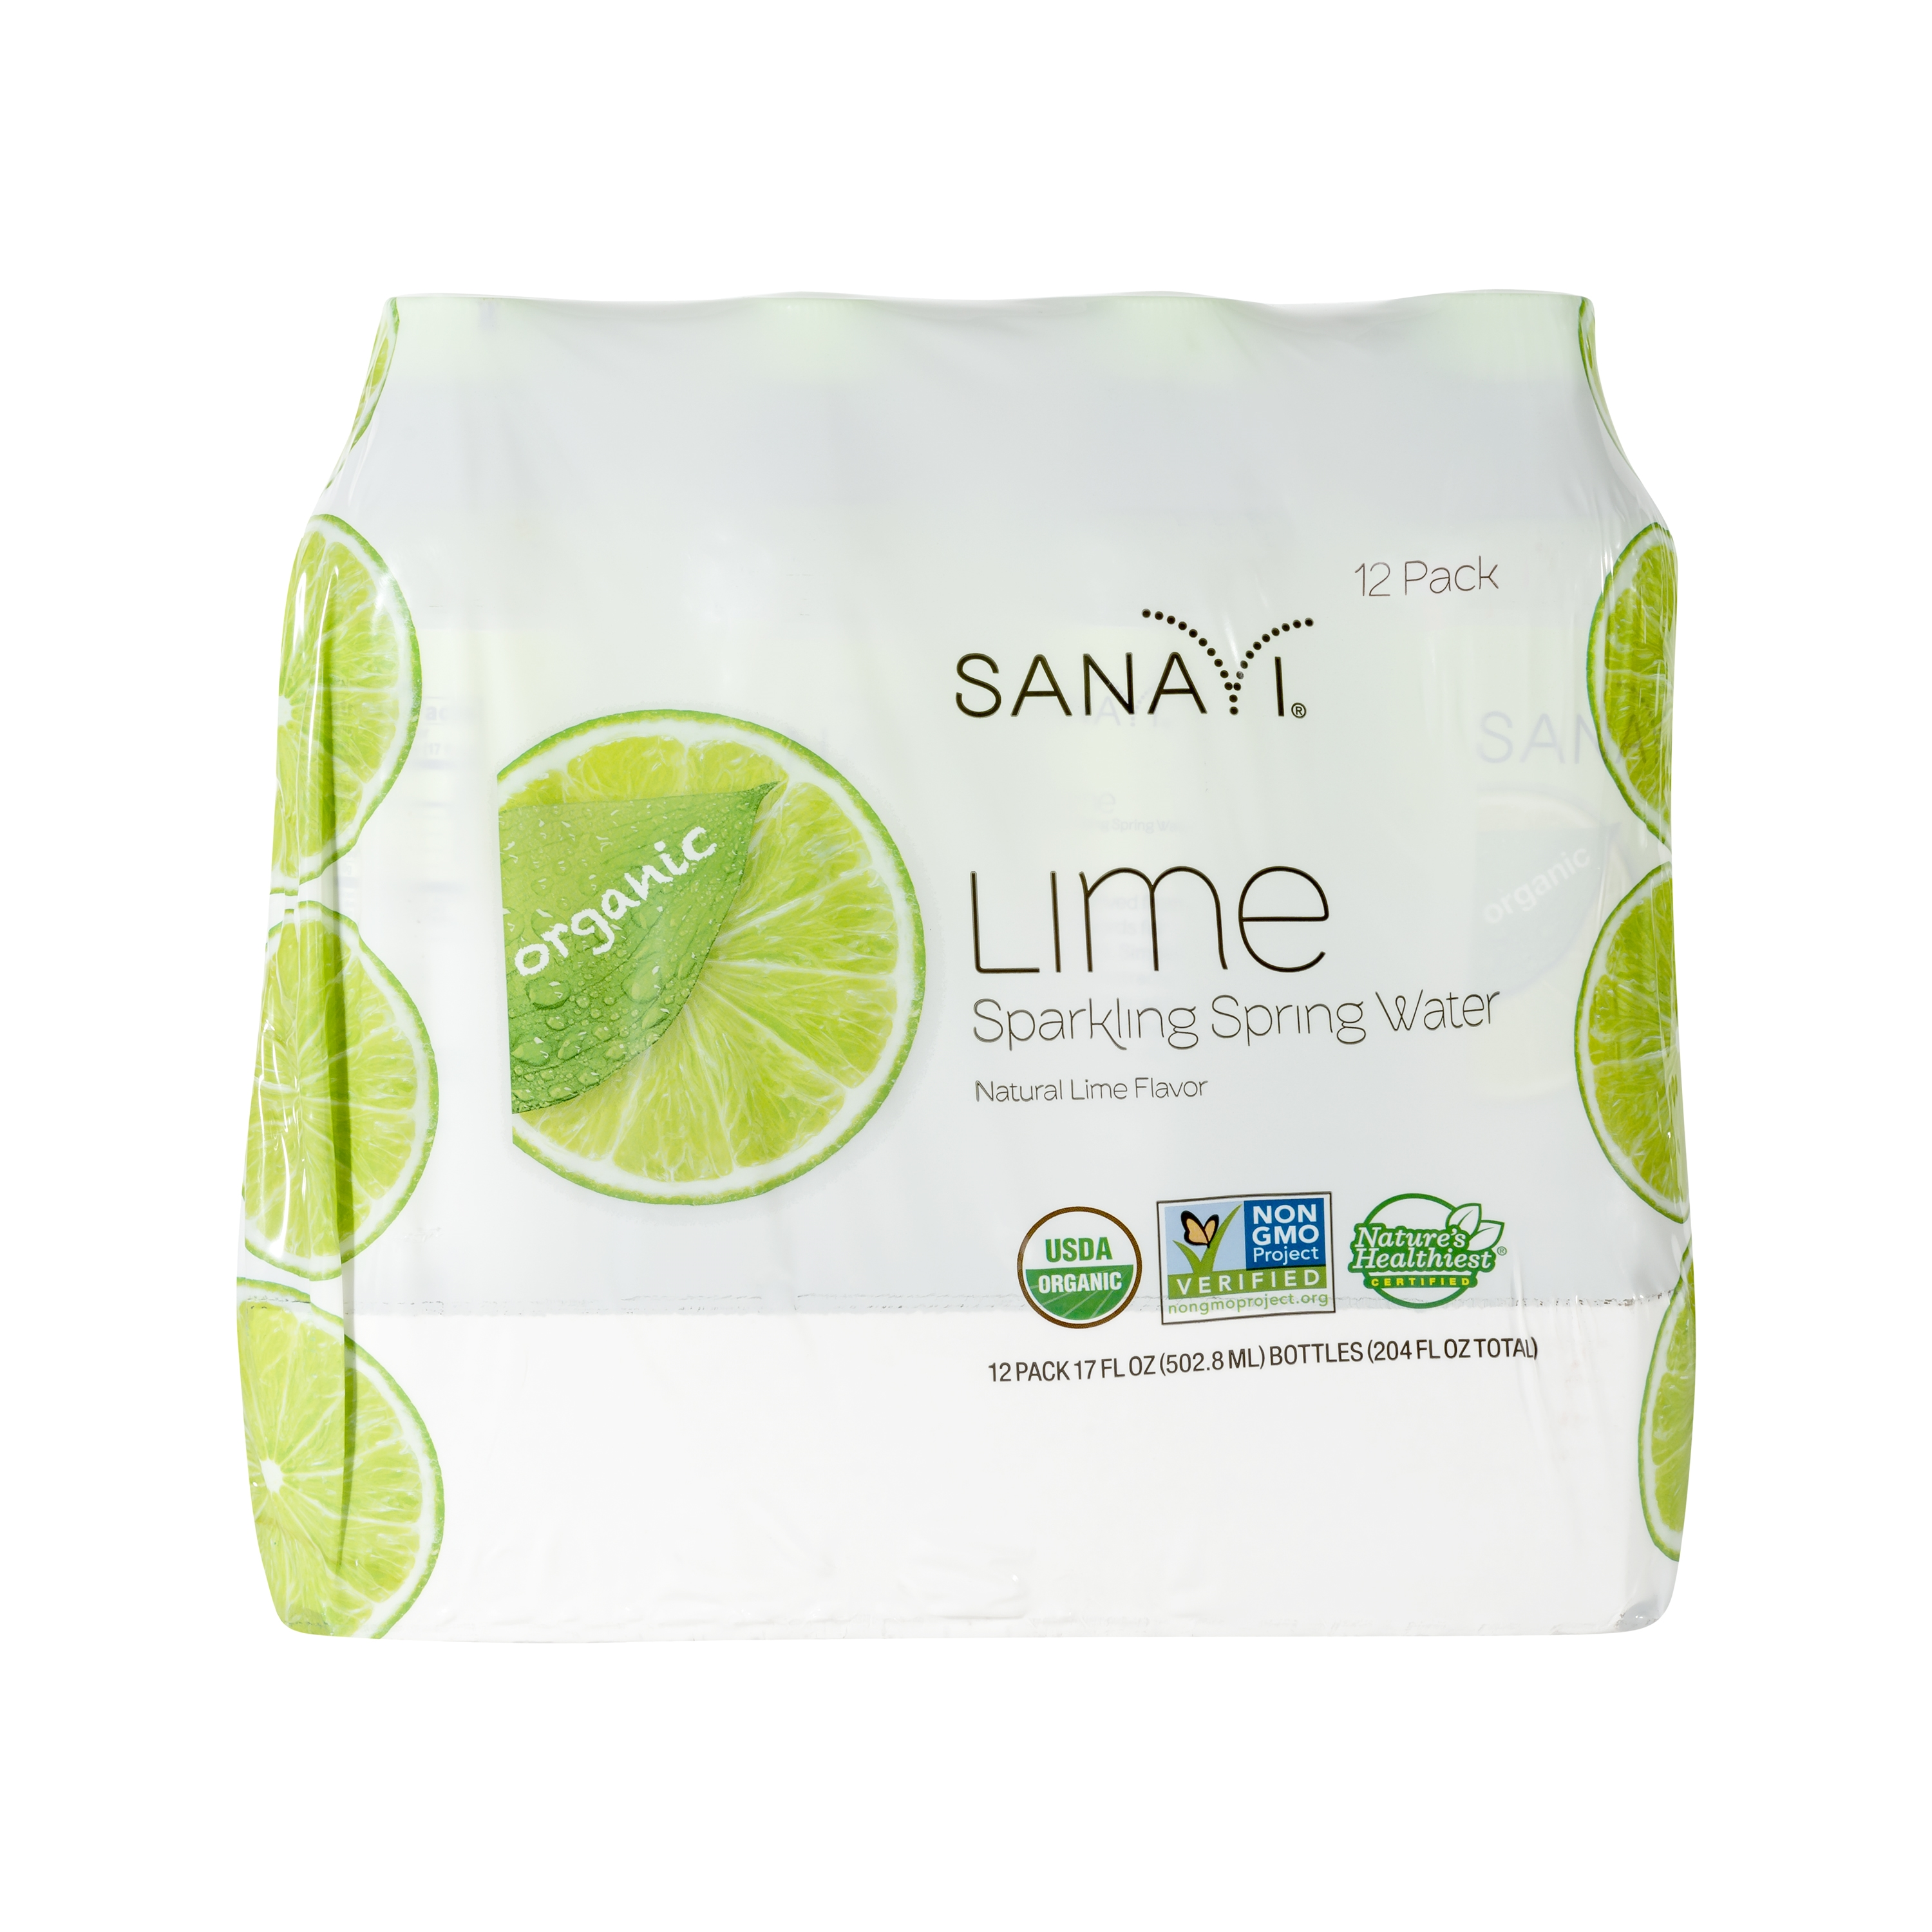 Sanavi Lime Sparkling Spring Water, 17 oz (12 Pack)